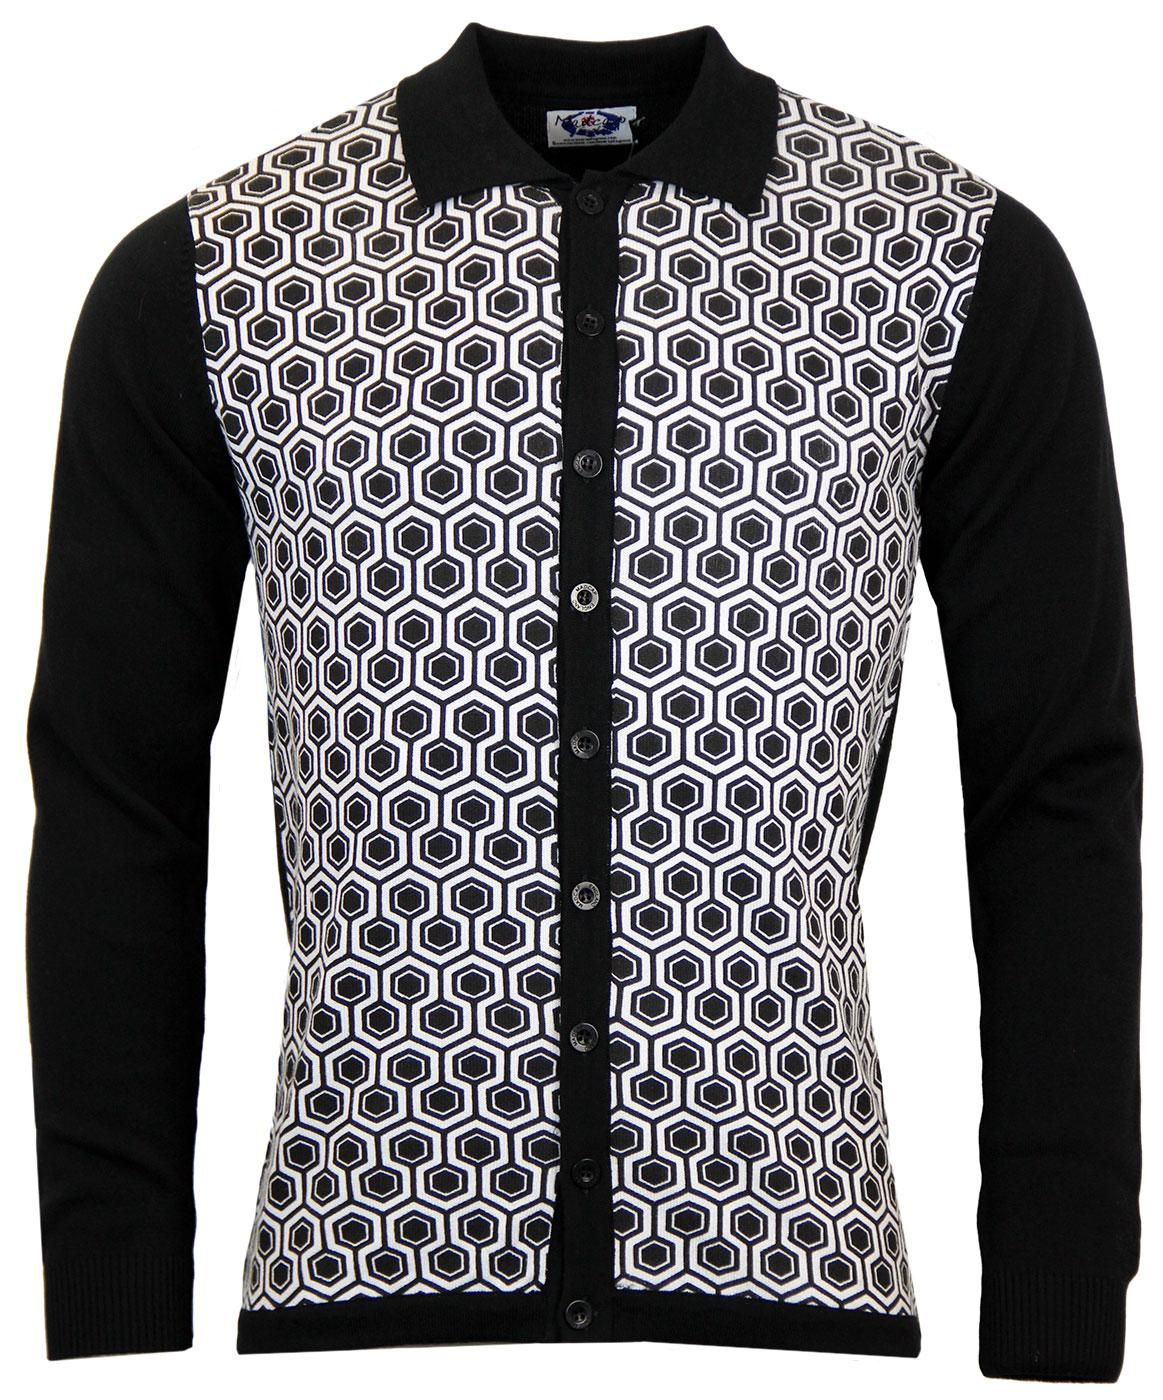 f66450f2 Overlook MADCAP ENGLAND Honeycomb Polo Cardigan | Blood Brothers ...